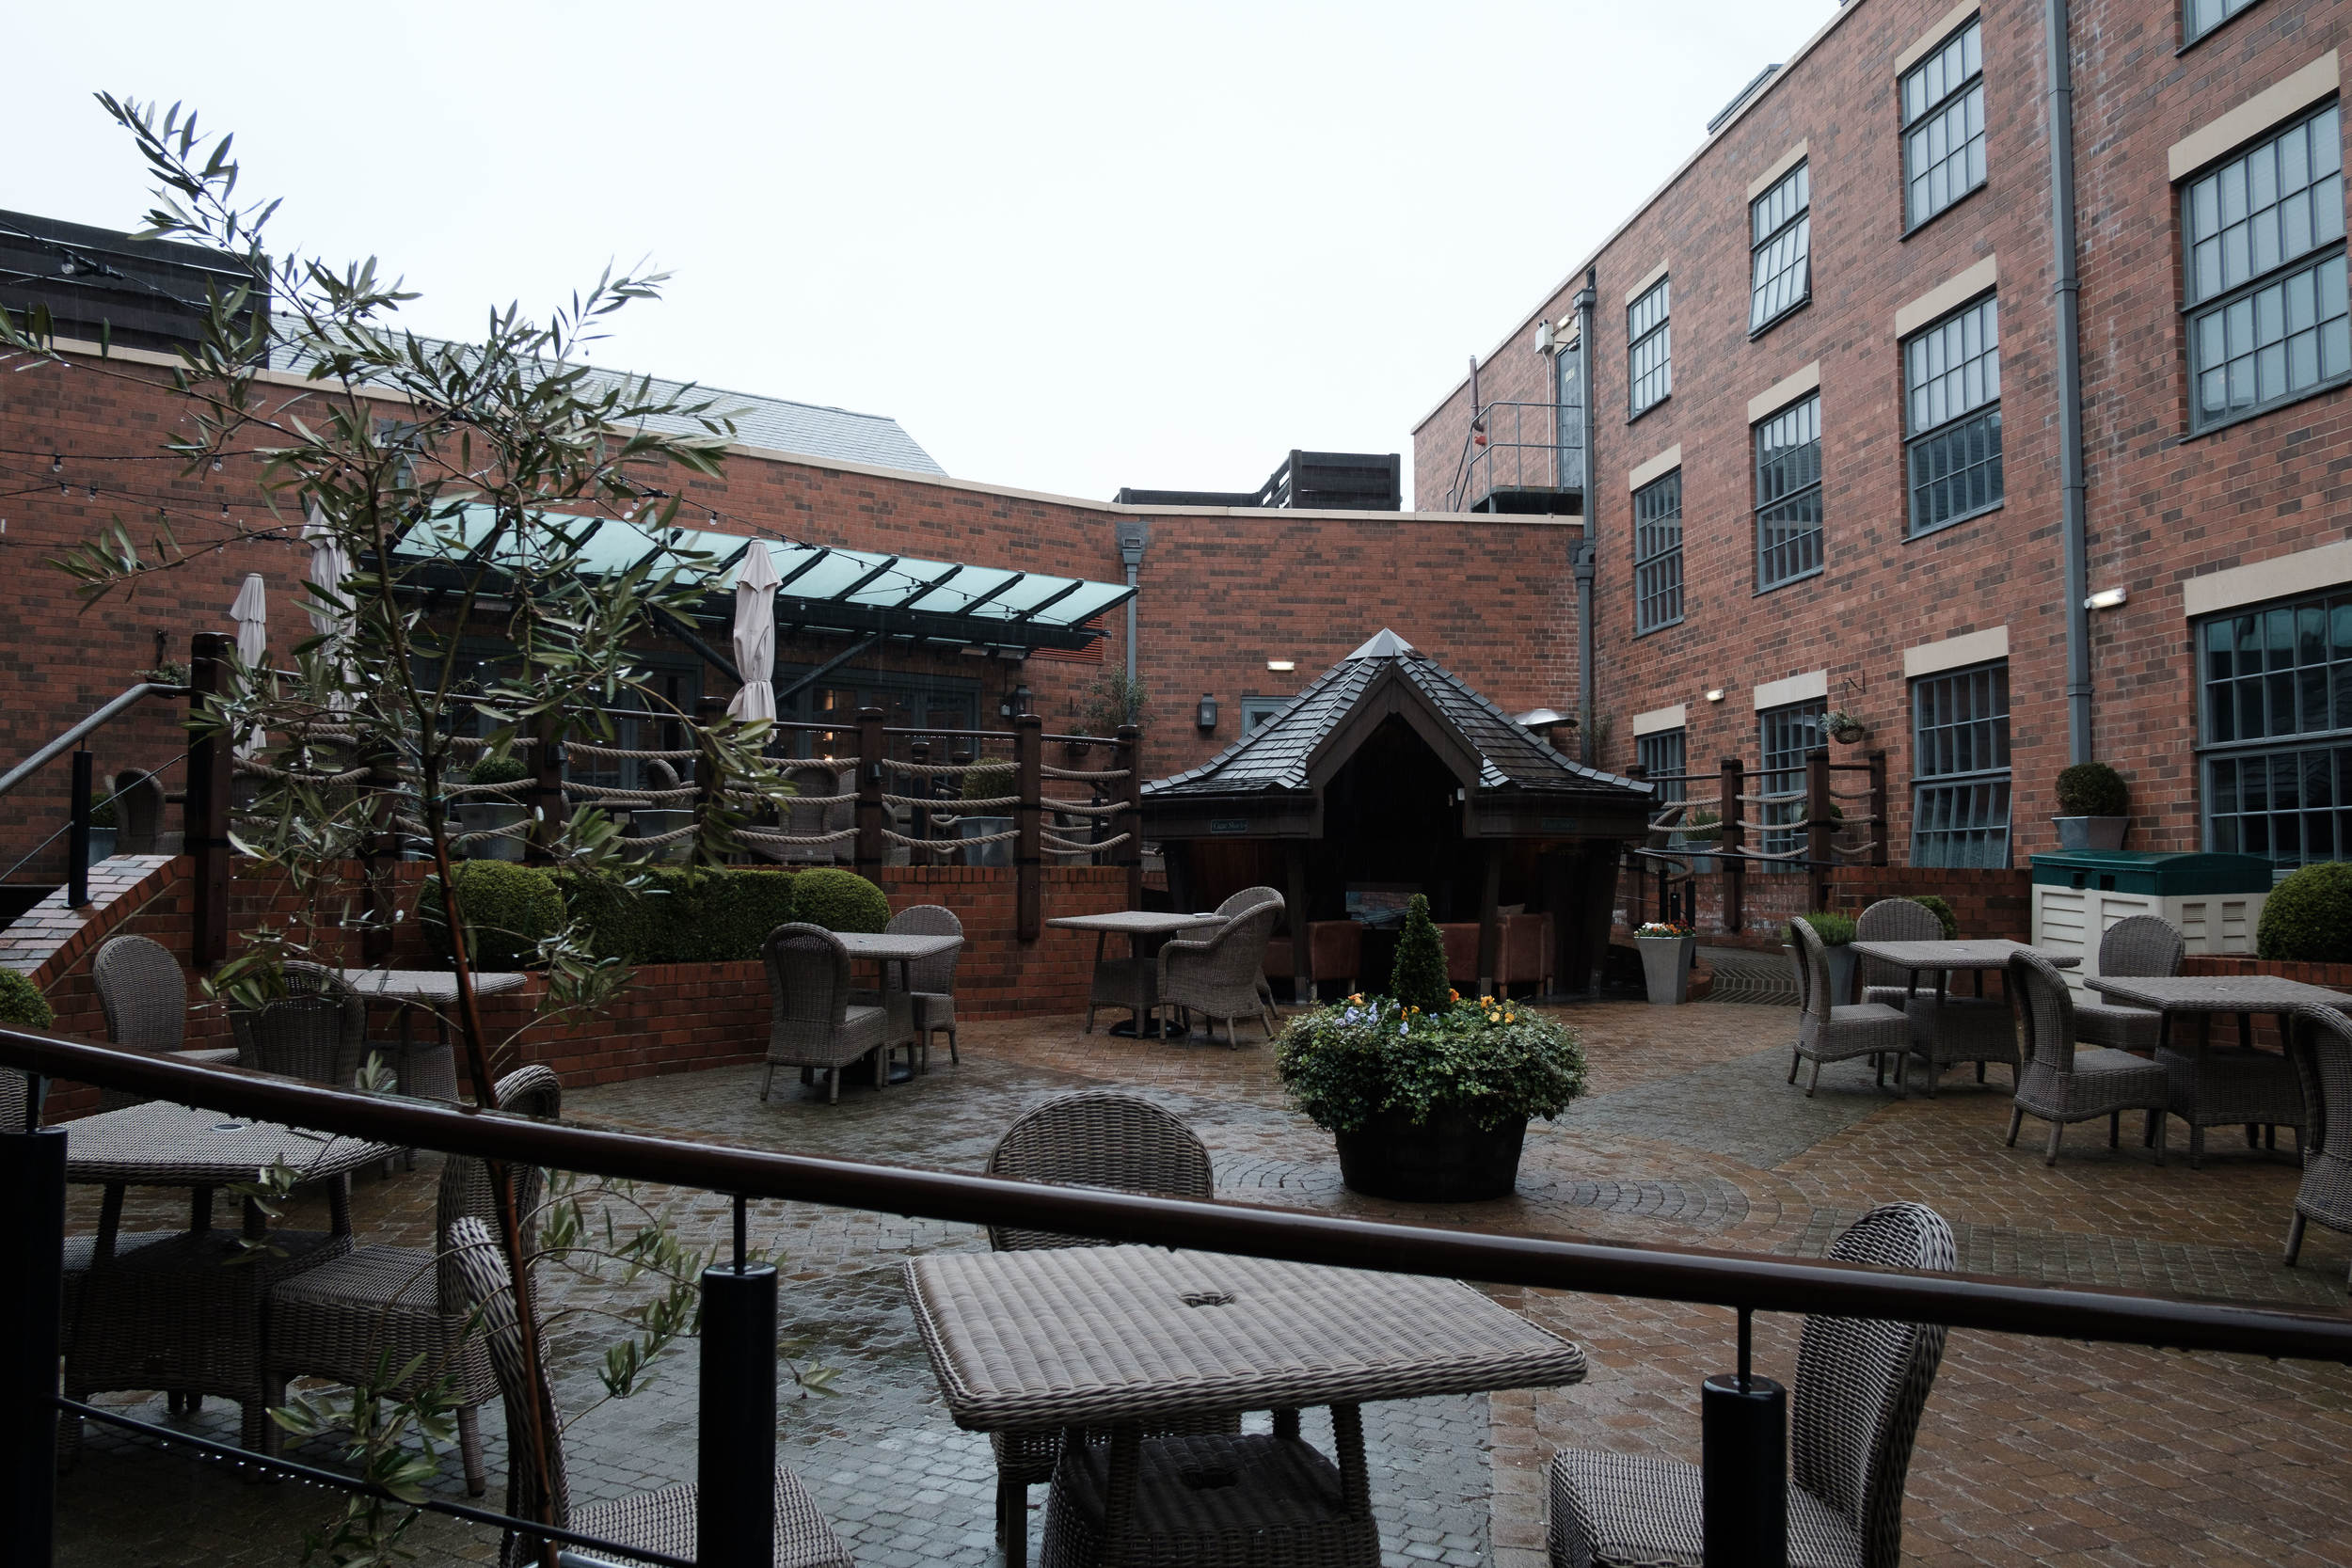 The central courtyard of Hotel du Vin - including the Cigar Shack